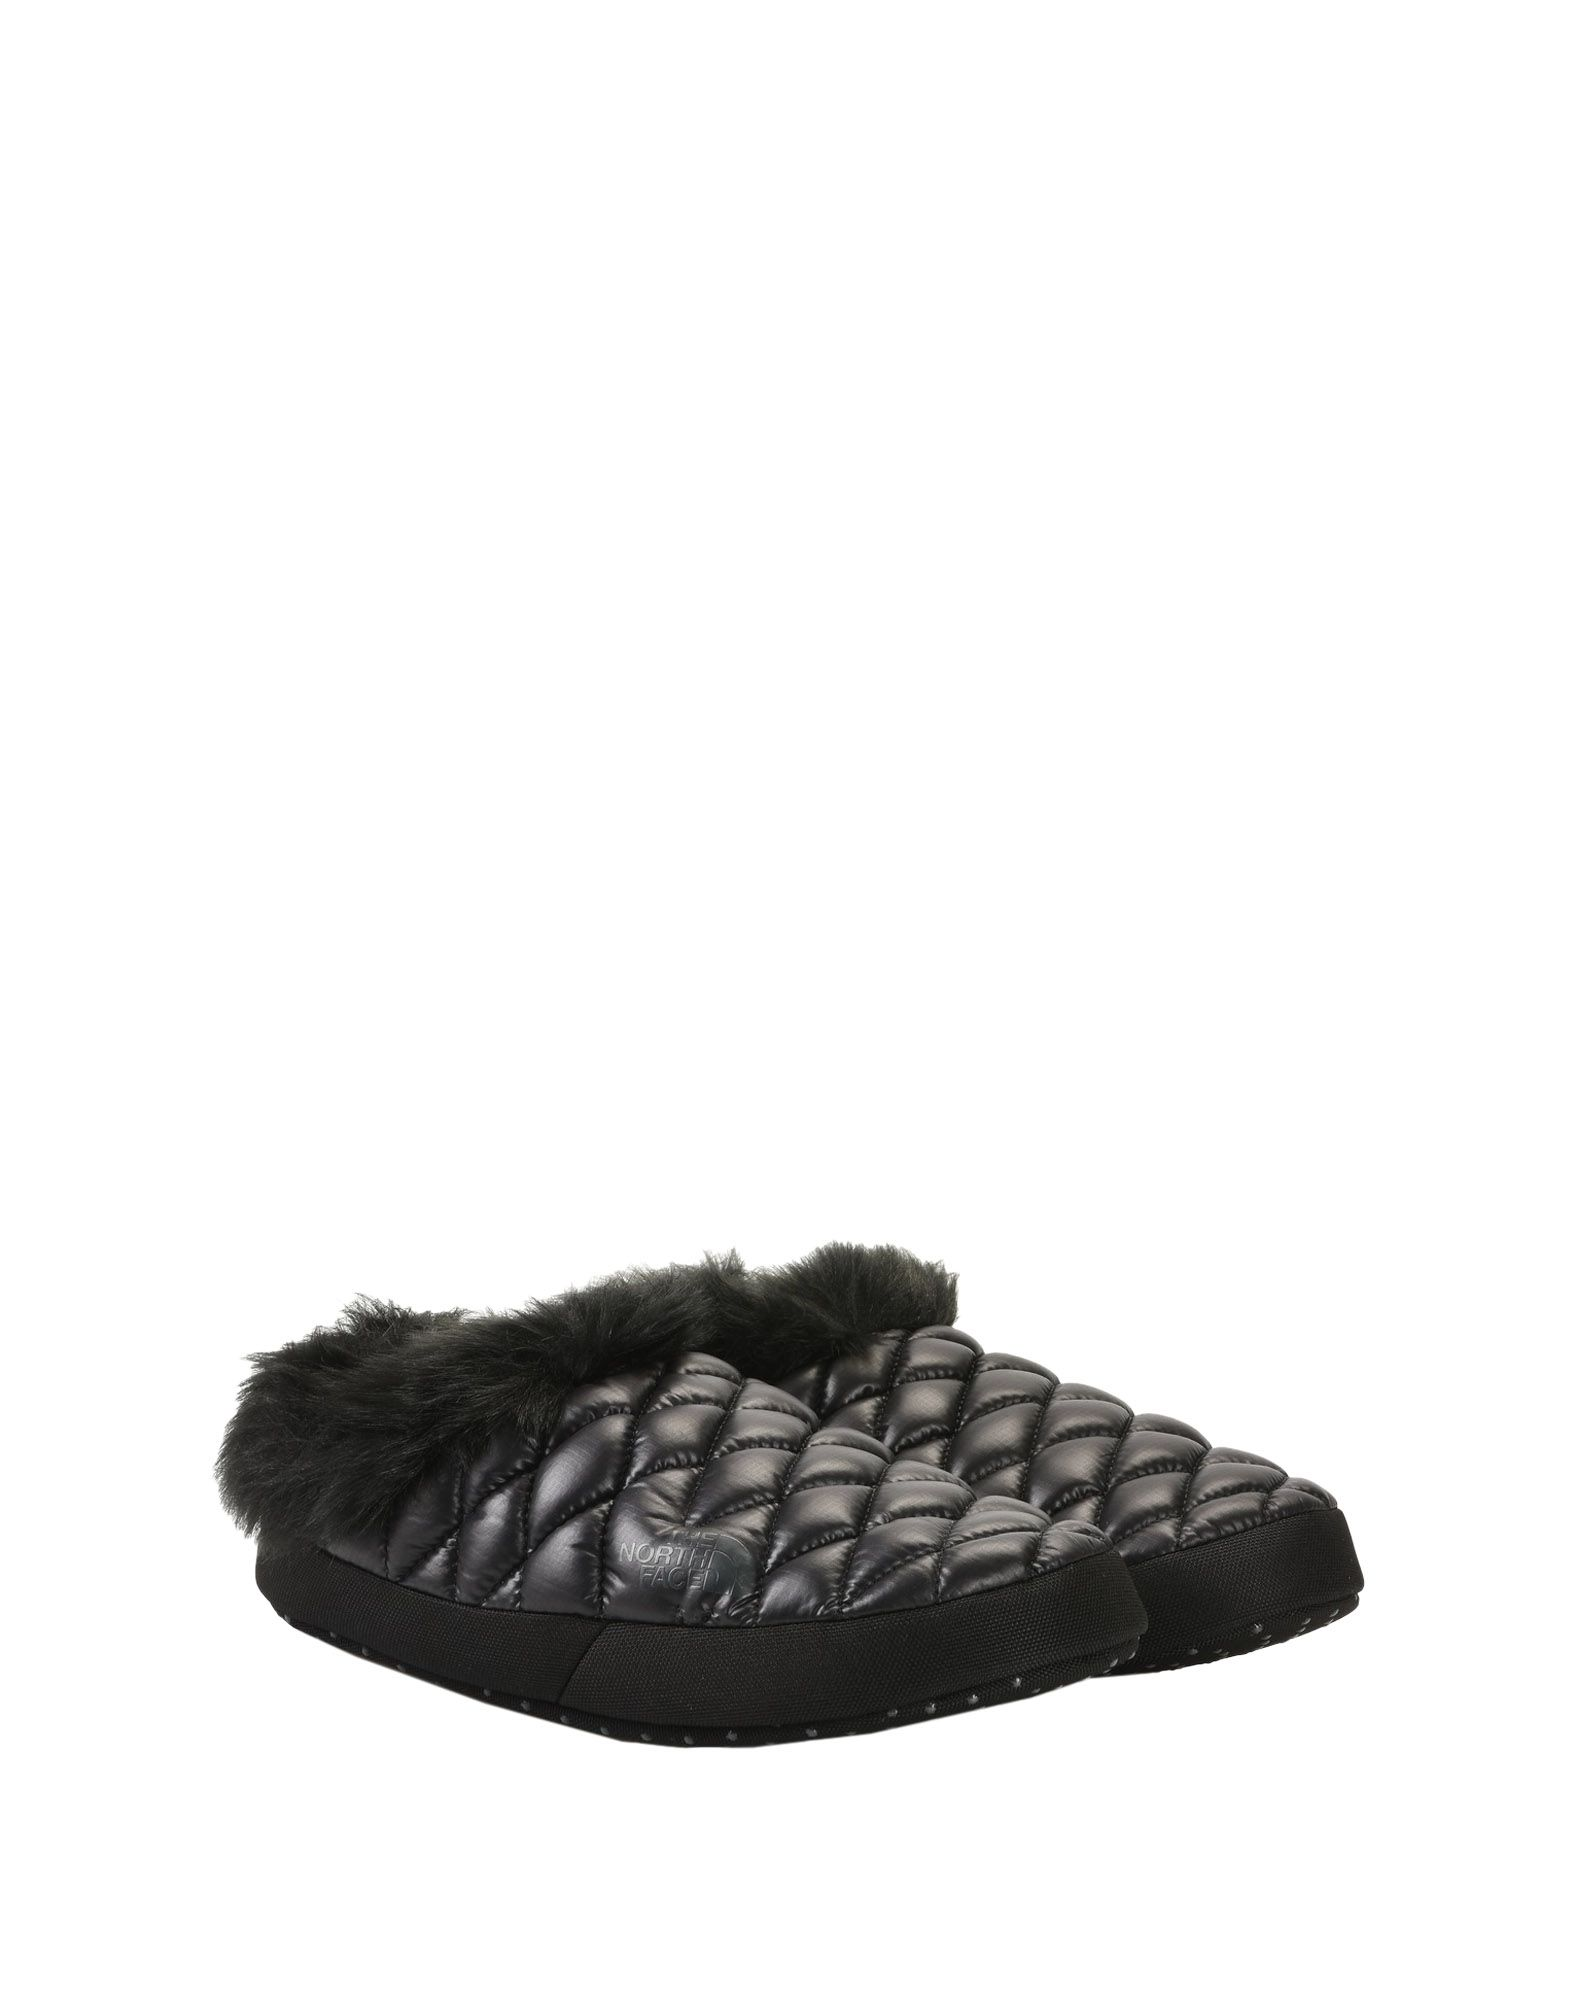 Chaussons The North Face W Tb Traction Mule Fur - Femme - Chaussons The North Face sur